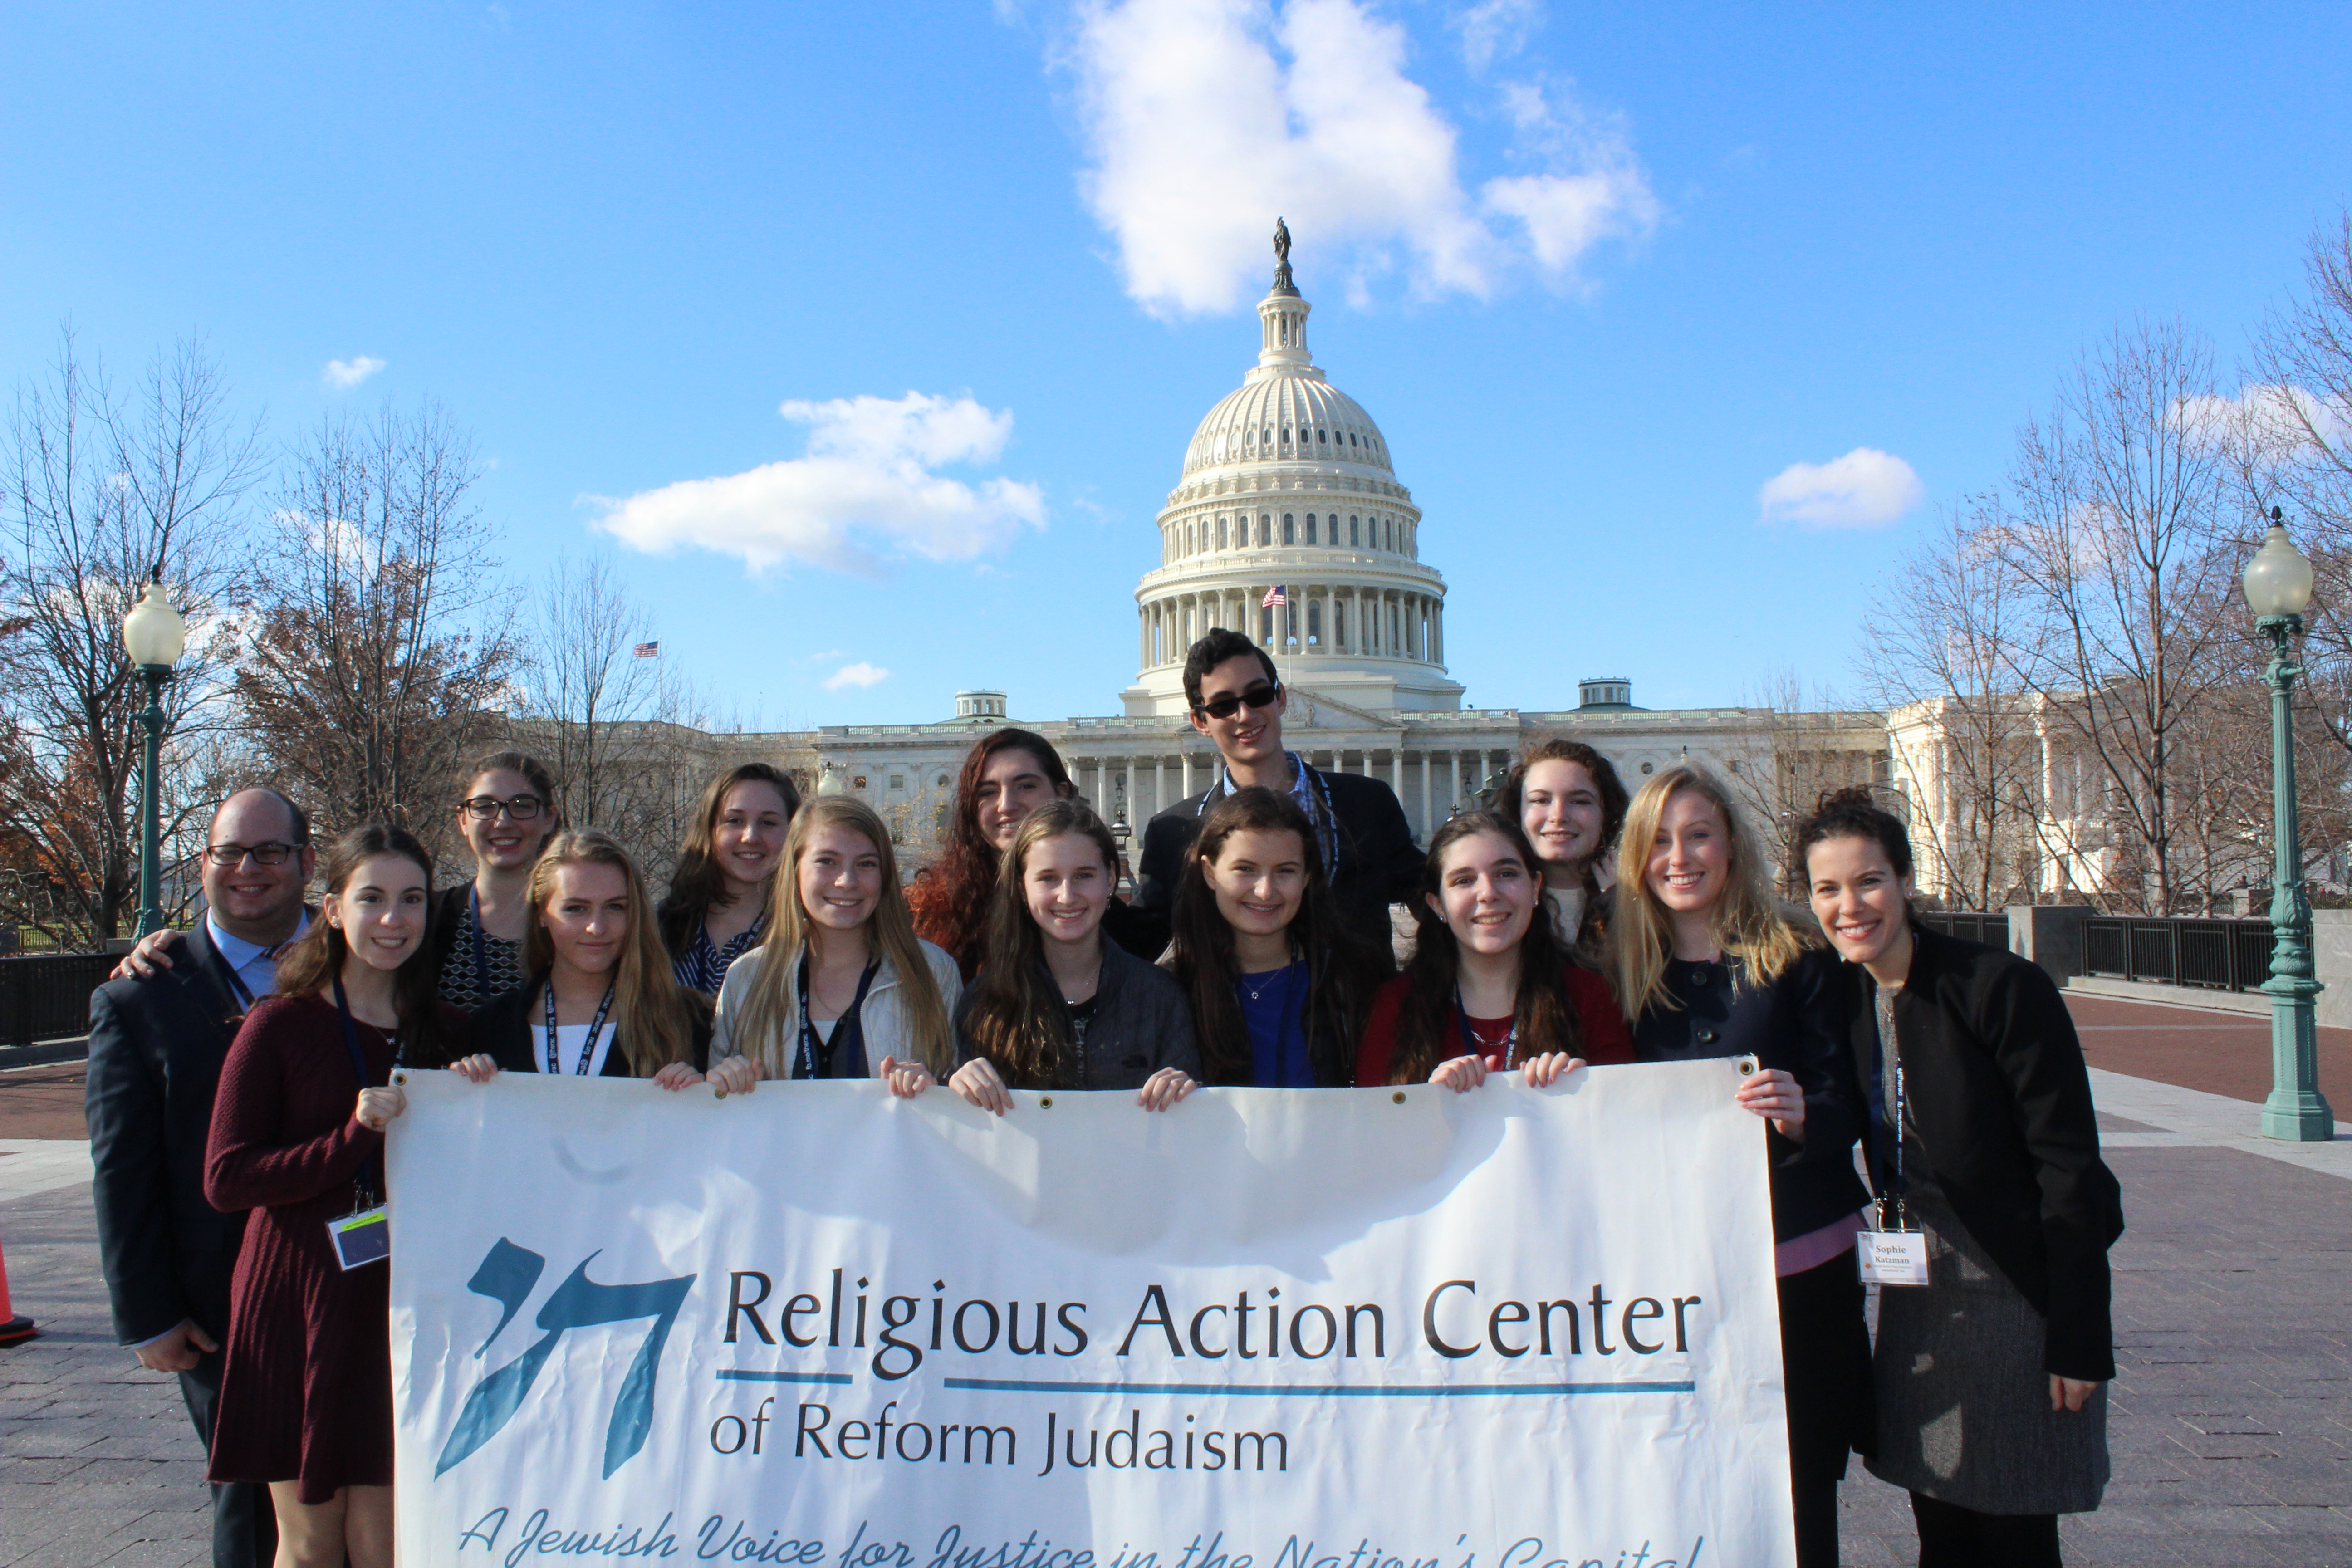 Teens standing in front of the United States Capitol building